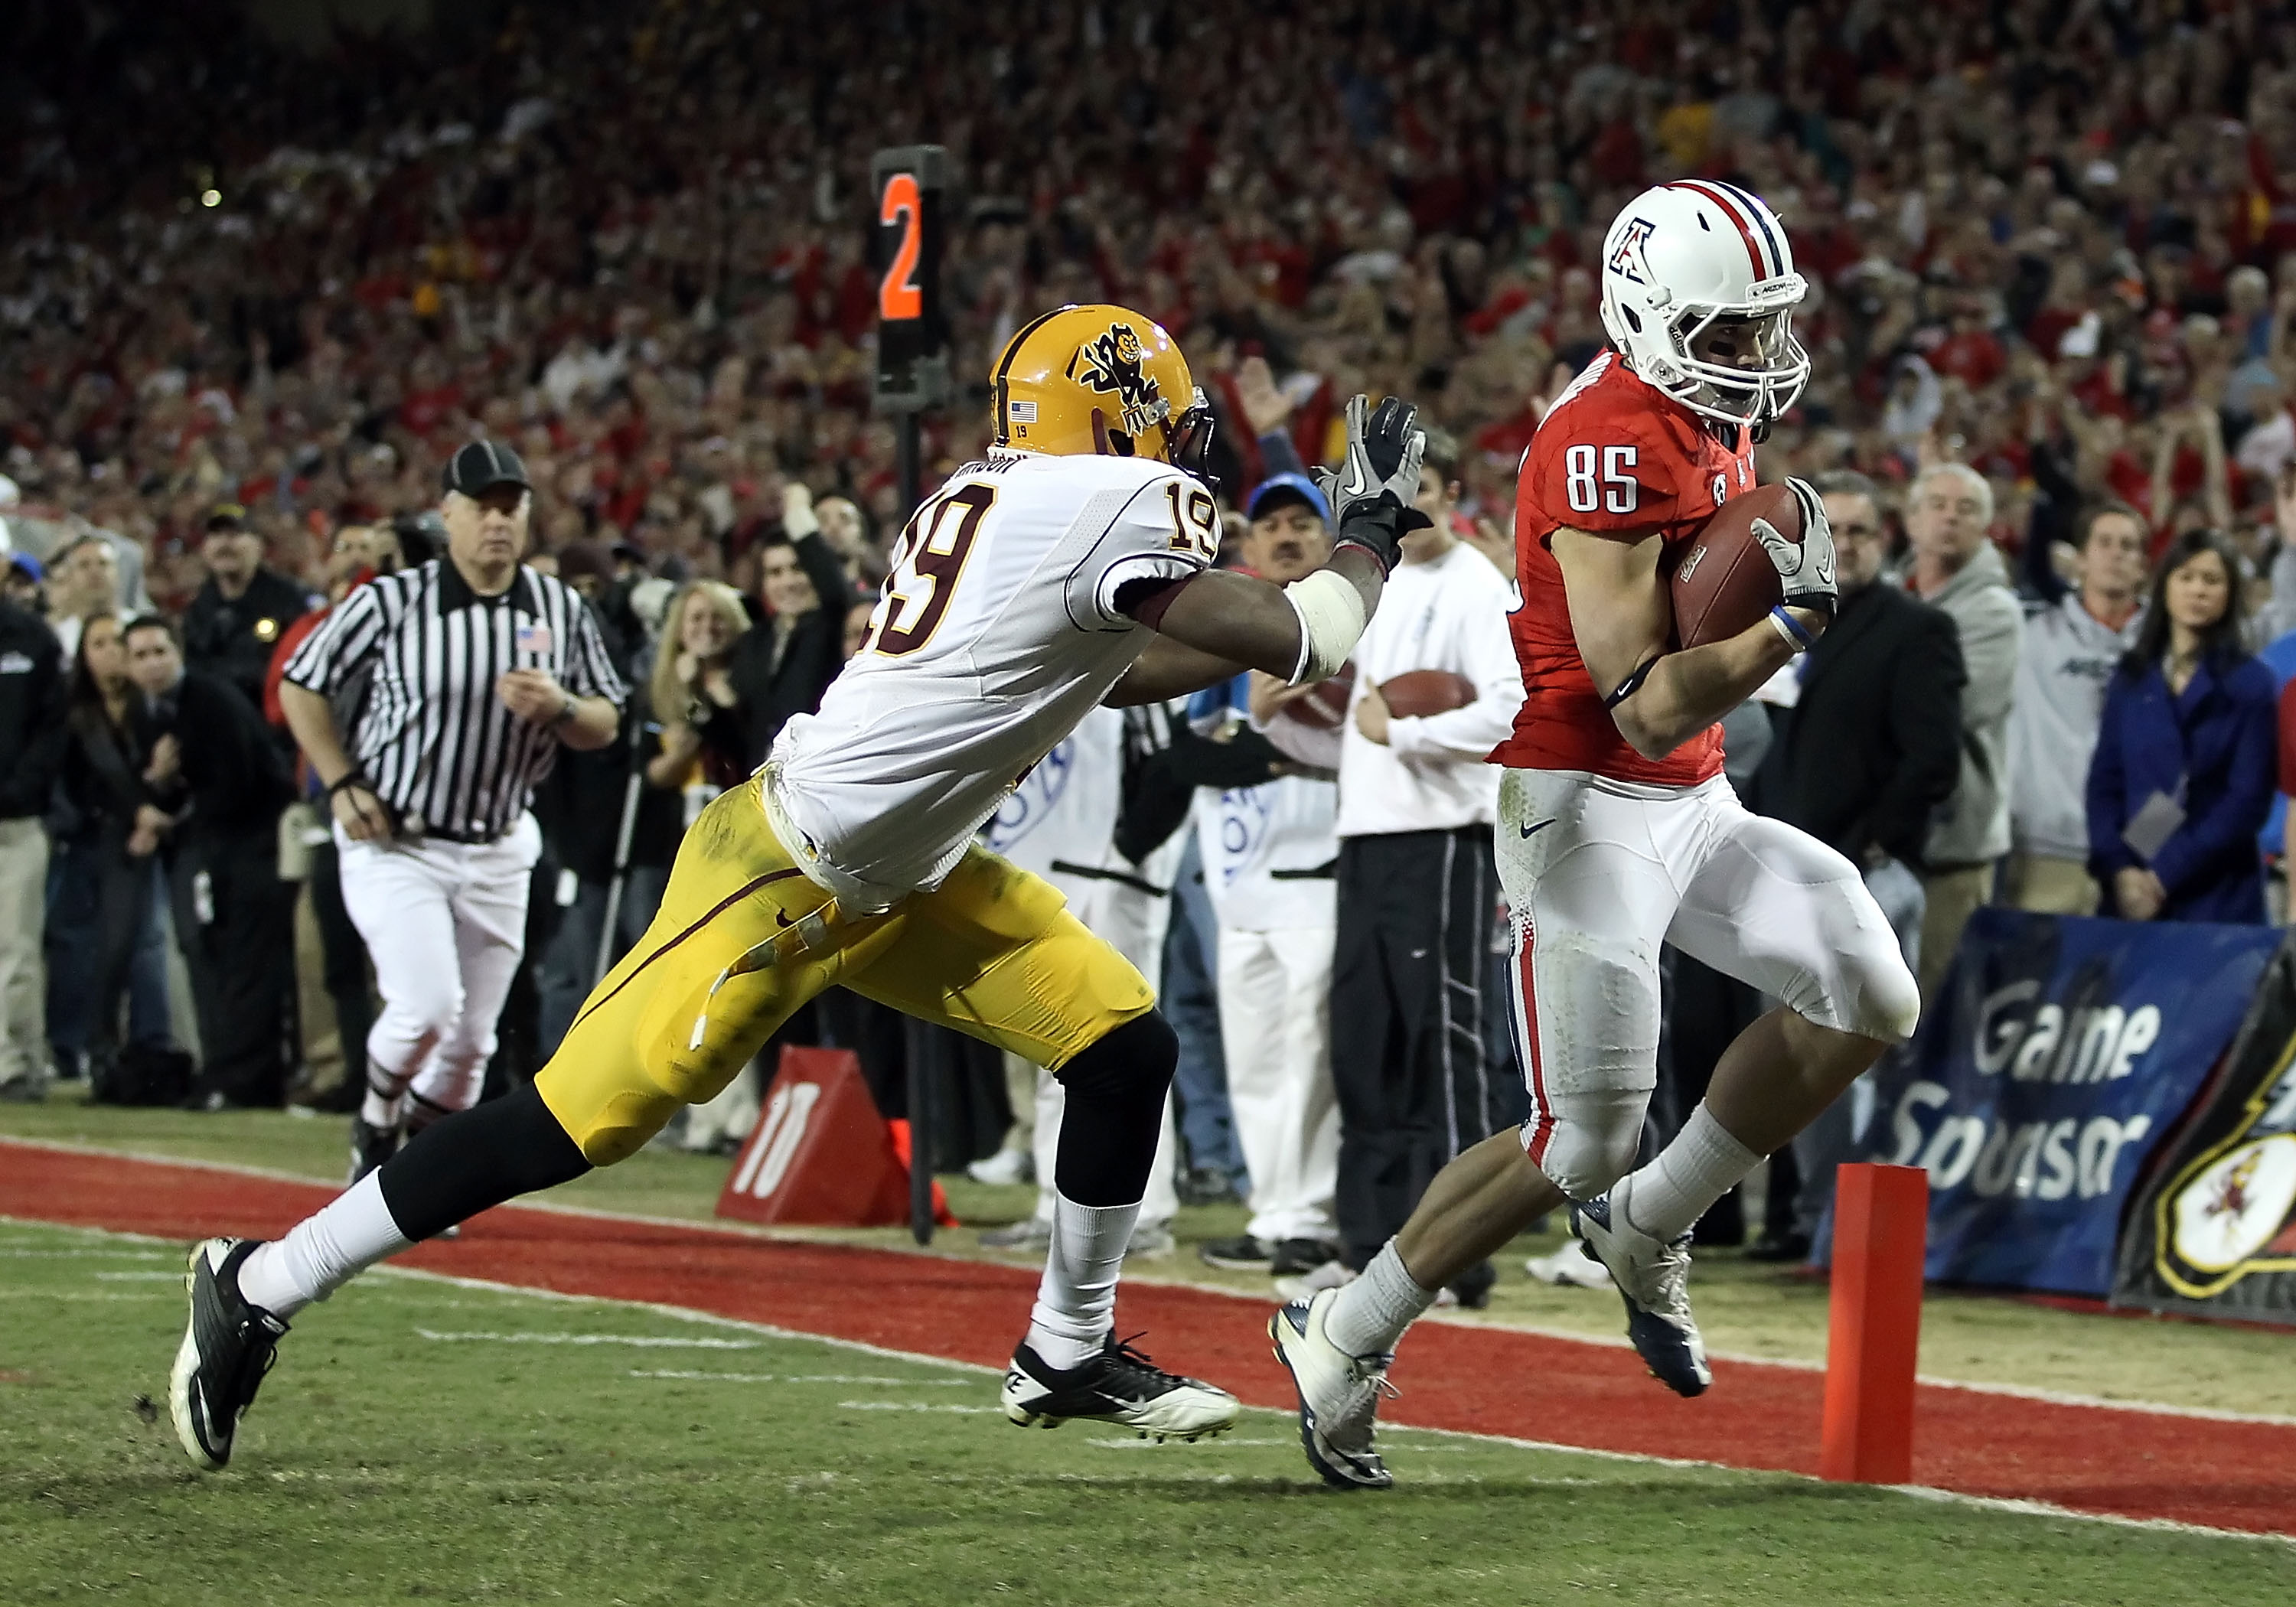 TUCSON, AZ - DECEMBER 02:  Wide receiver David Douglas #85 of the Arizona Wildcats scores a touchdown reception against the Arizona State Sun Devils during the college football game at Arizona Stadium on December 2, 2010 in Tucson, Arizona.   The Sun Devi